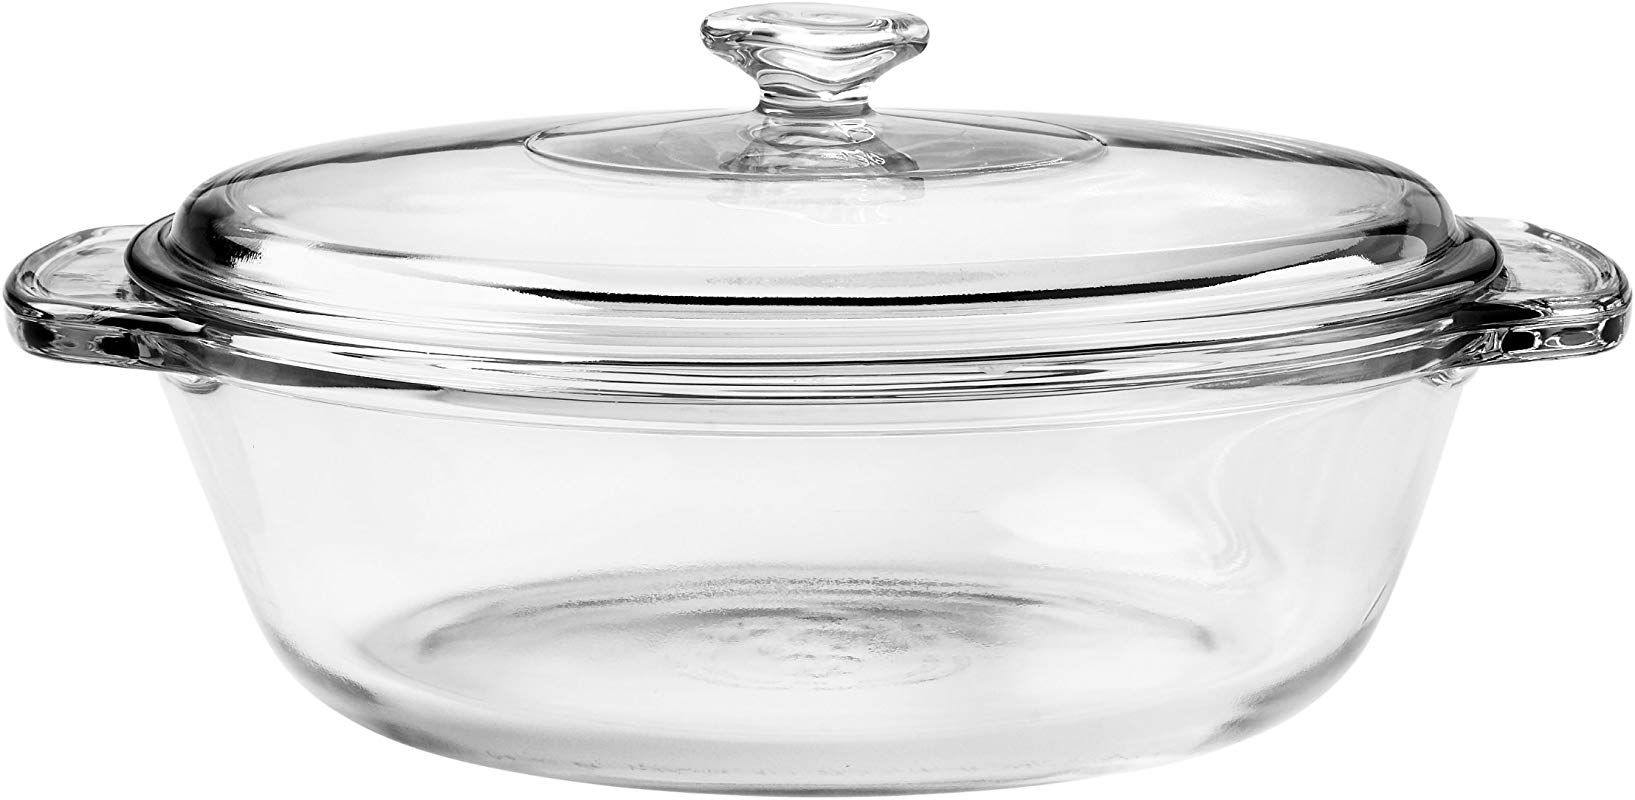 Anchor Hocking 77890 Fire King Casserole Baking Dish With Lid Glass 1 5 Quart